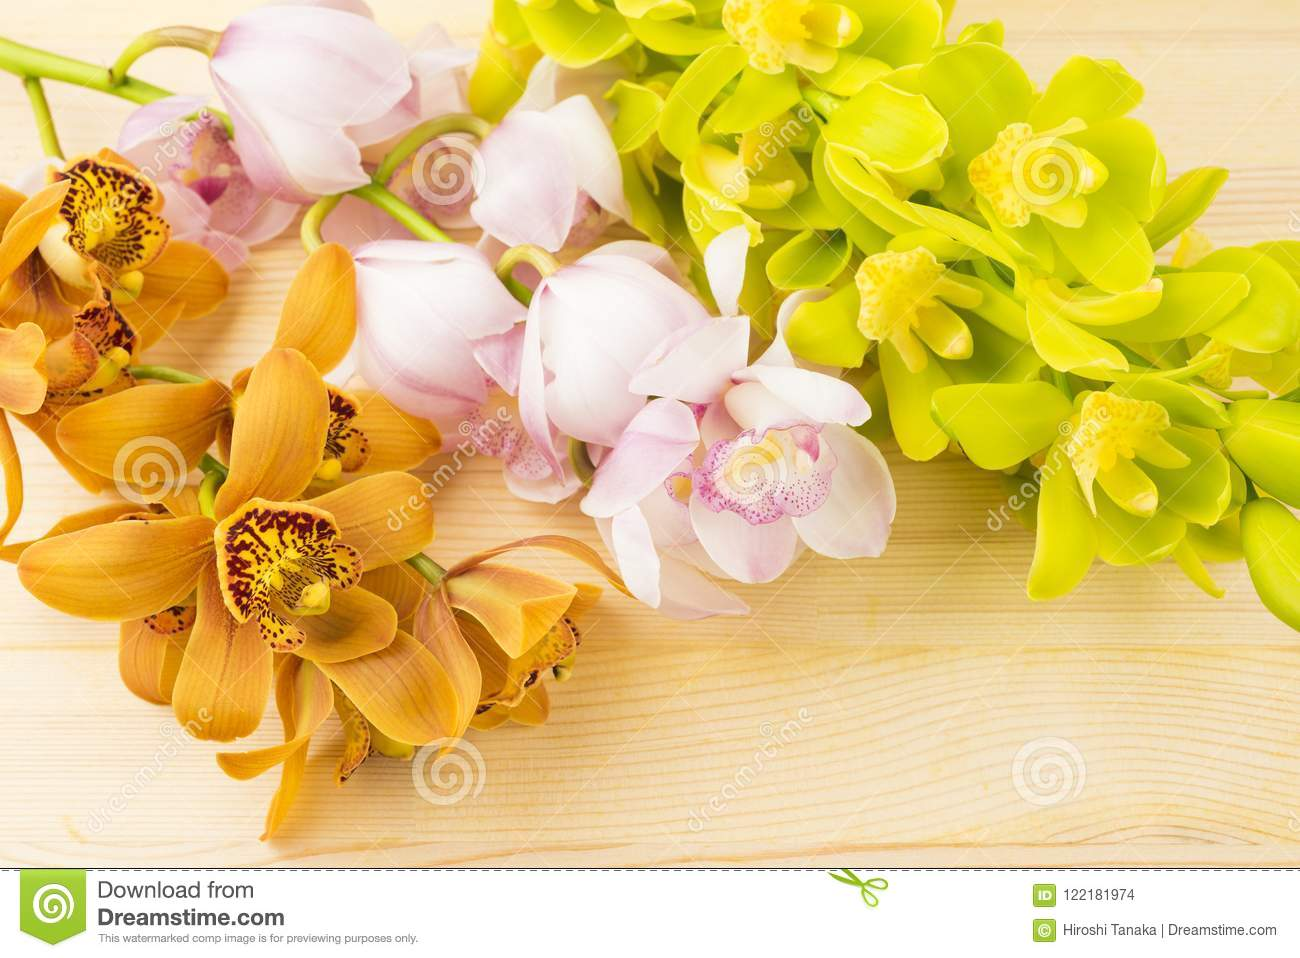 Three colors of orchid flowers